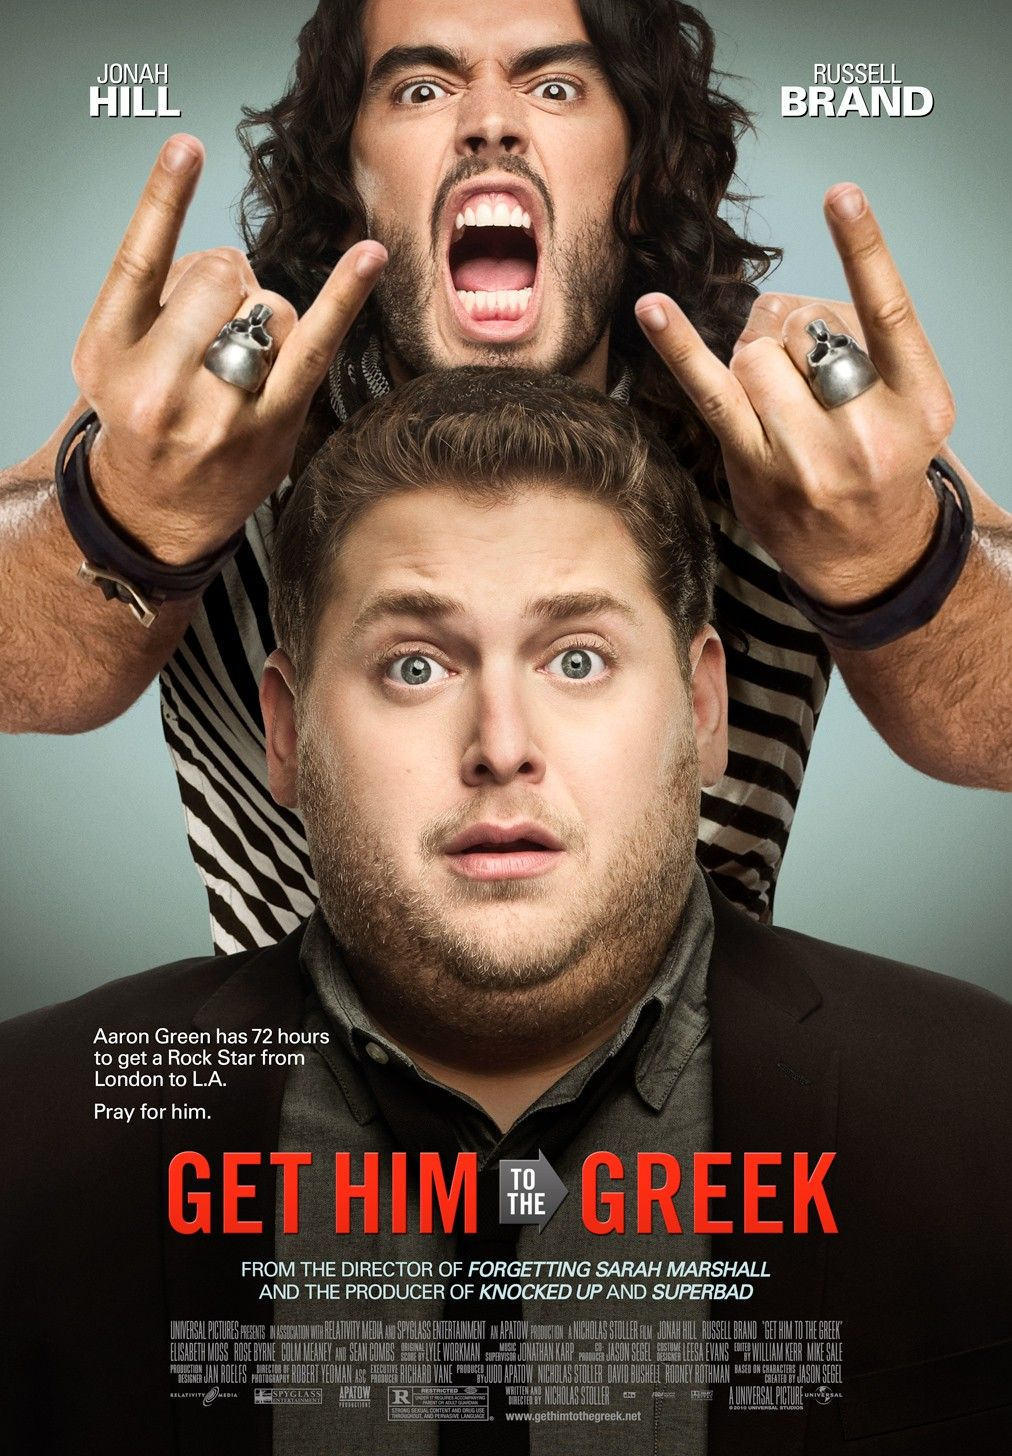 Get Him to the Greek movie poster